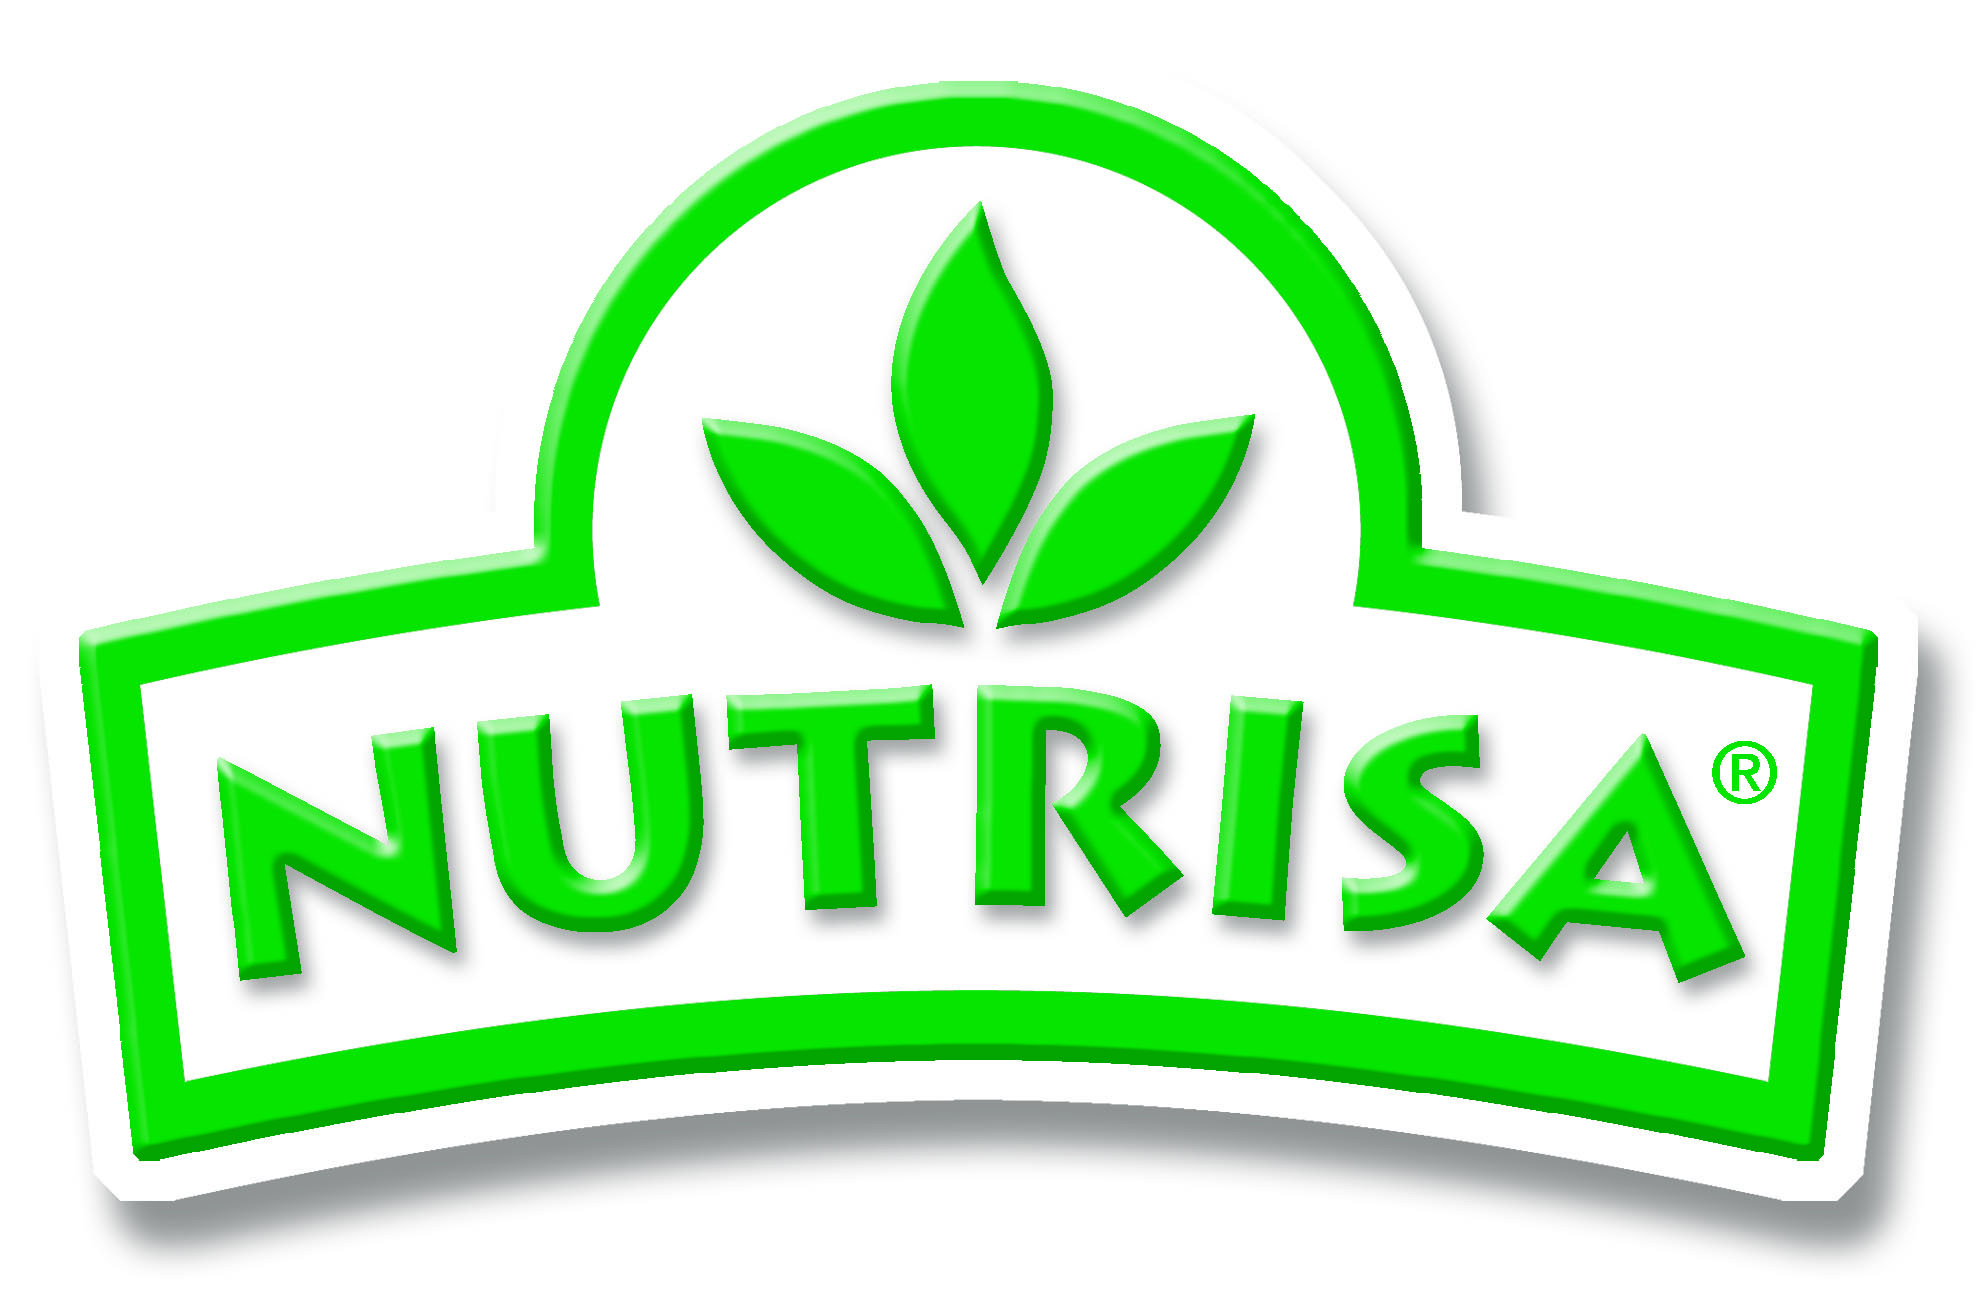 https://nutrisacorp.com/chile